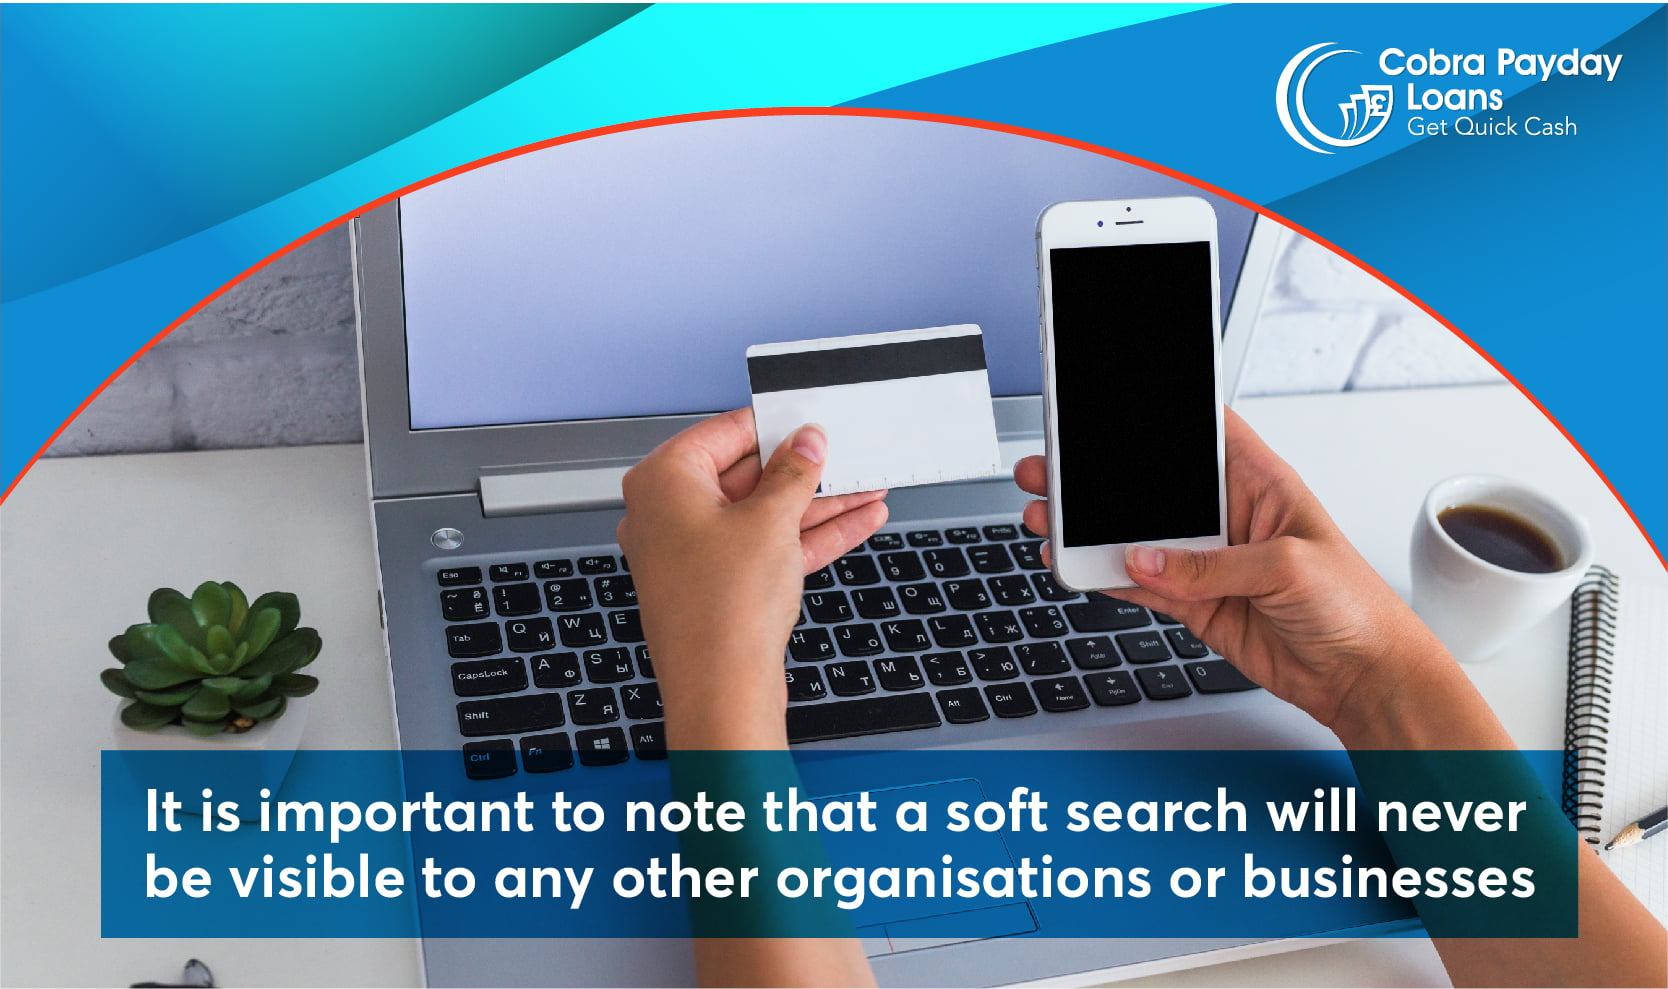 It is important to note that a soft search will never be visible to any other organisations or businesses